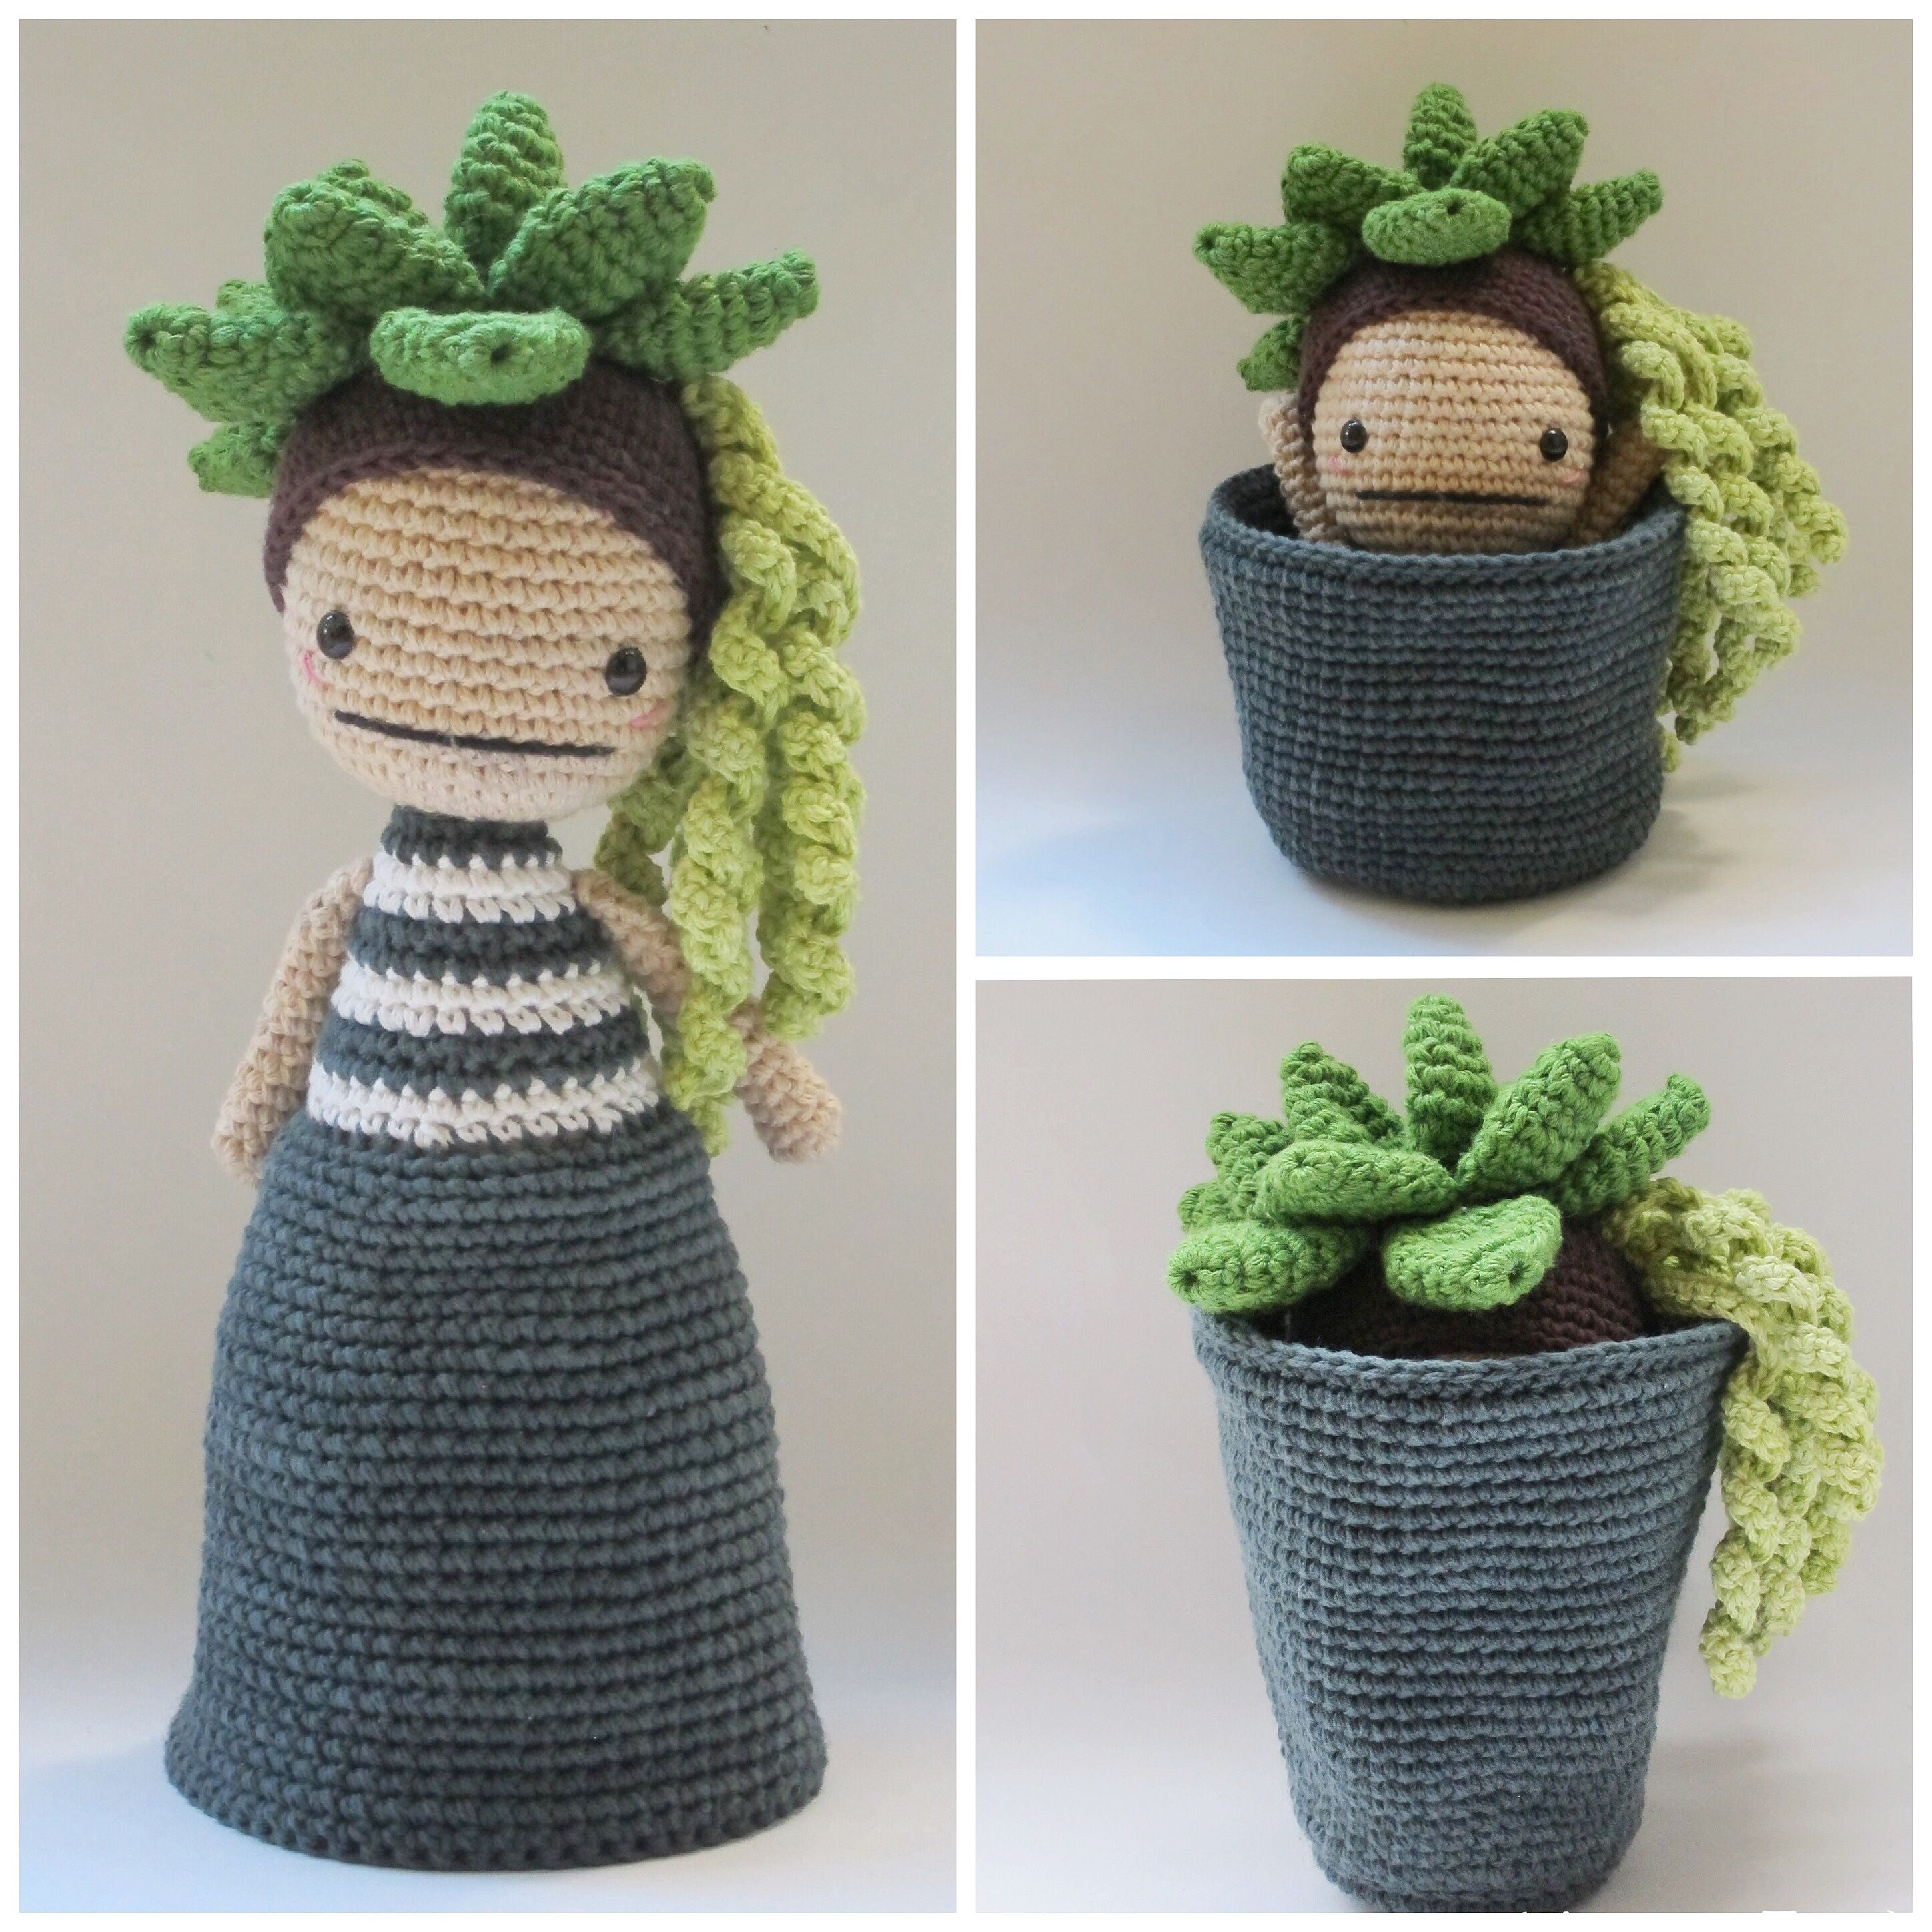 Flora, the Succulent - Crochet Pattern by {Amour Fou} #toydoll